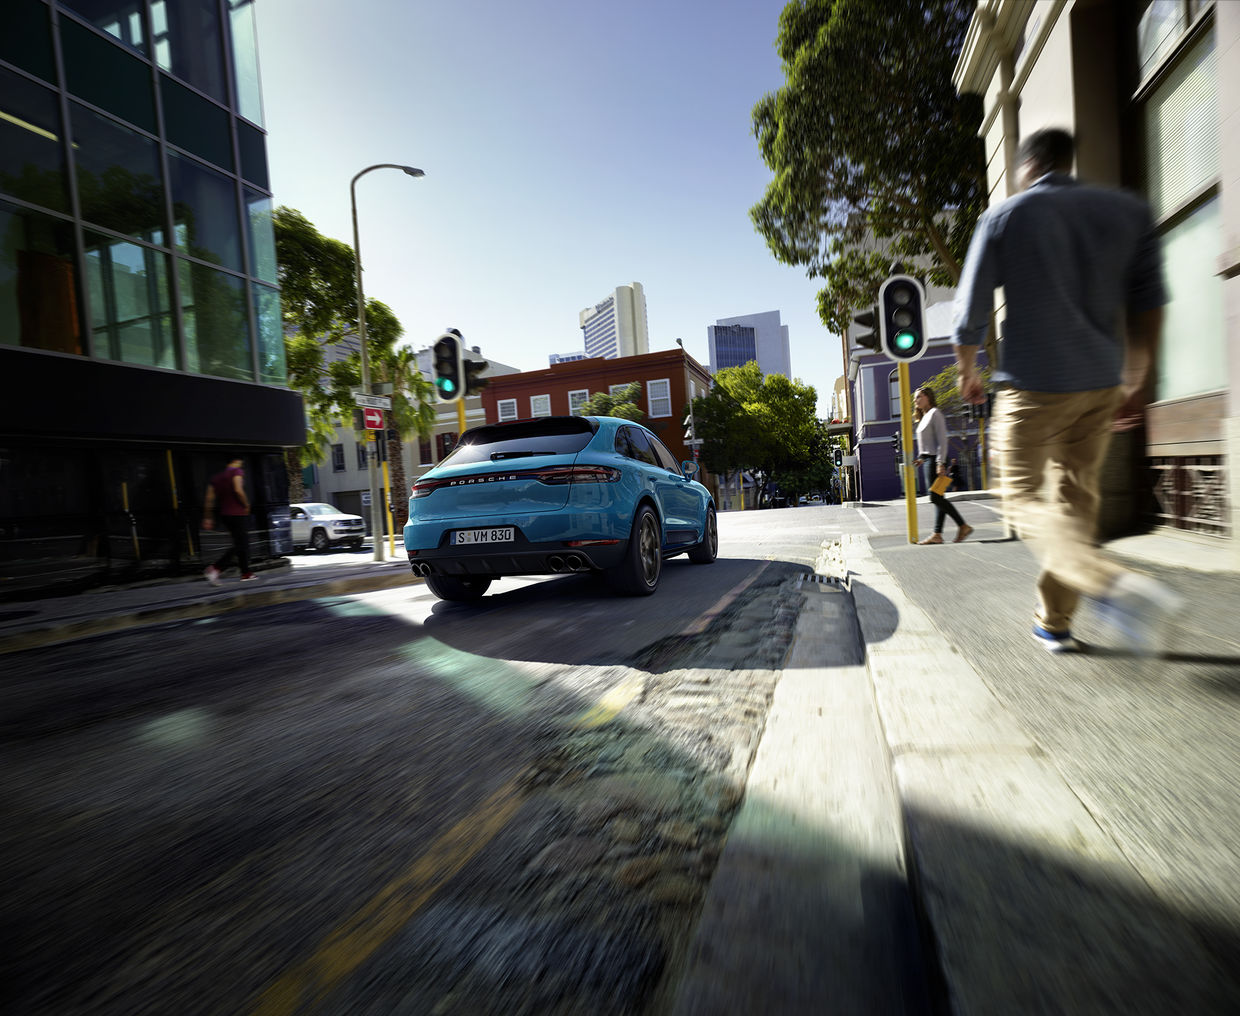 CHRISTA KLUBERT PHOTOGRAPHERS: DAVID MAURER FOR PORSCHE MACAN